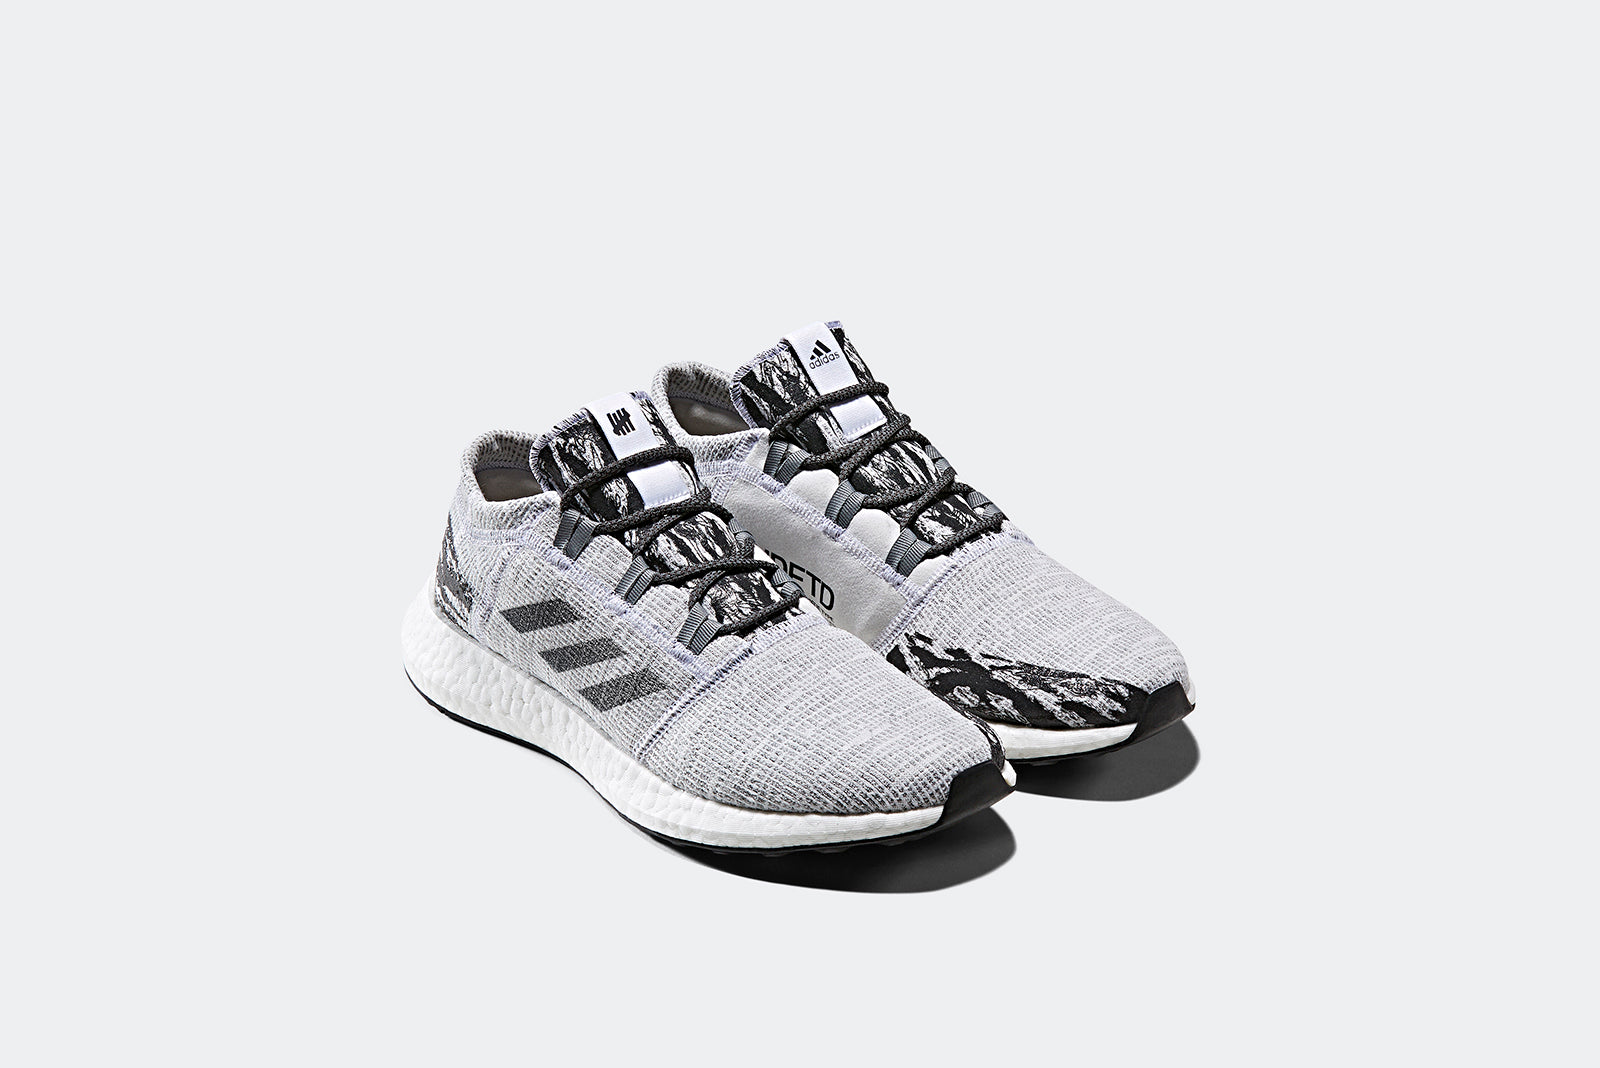 c34ed7c94 adidas Pureboost Go x Undefeated BC0474 Core Black Price  £119.00. Launch   Thursday 8th of November ONLINE  08 00GMT